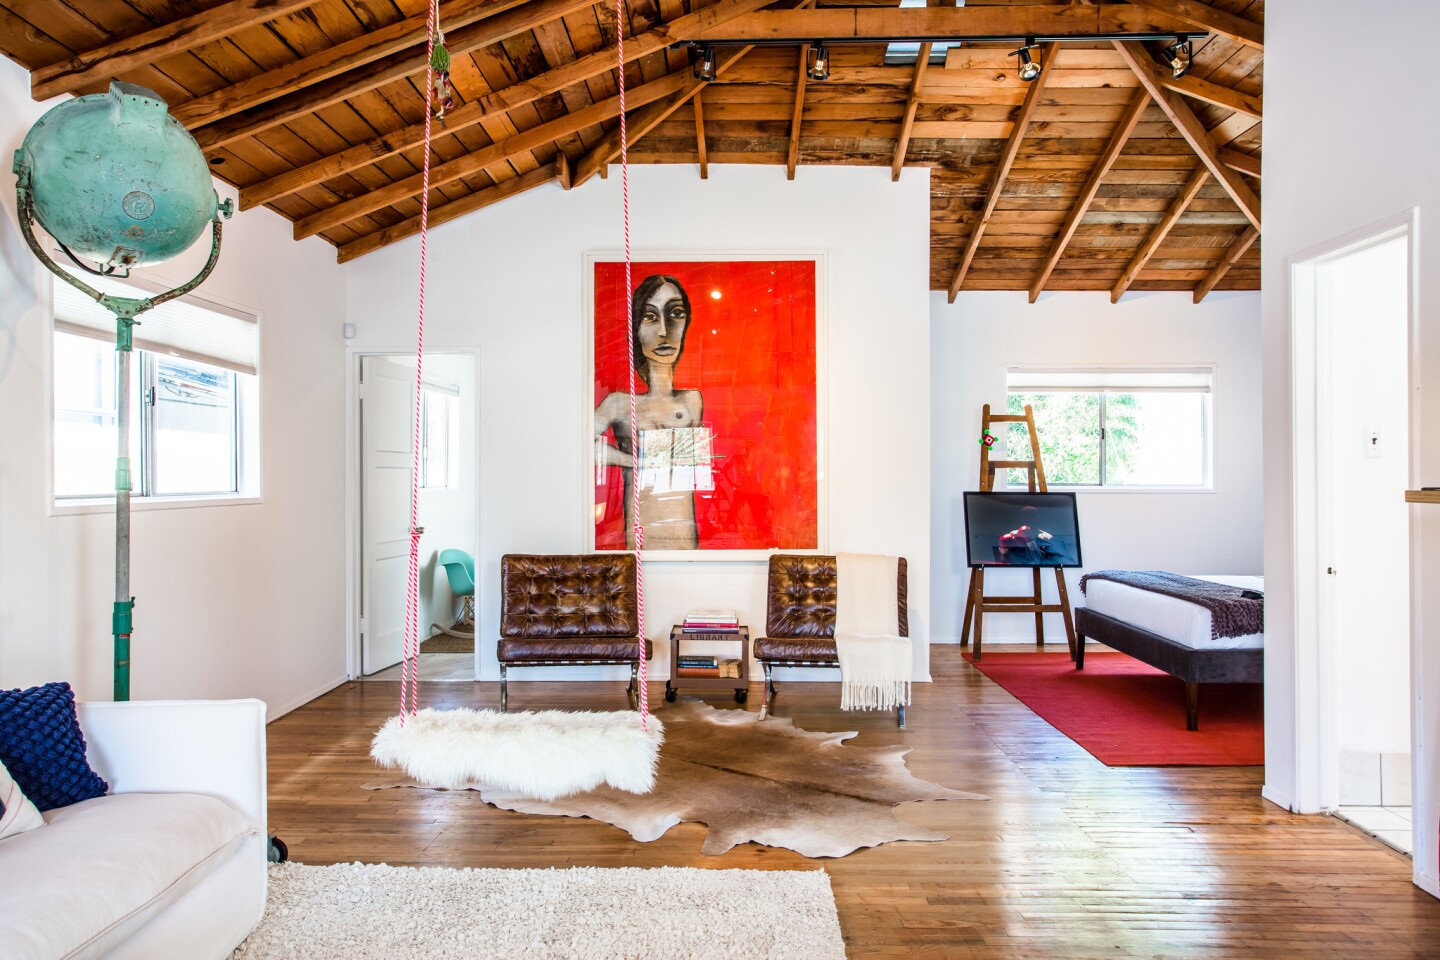 Home of the Day: Swing from the rafters in this artsy Venice Beach bungalow